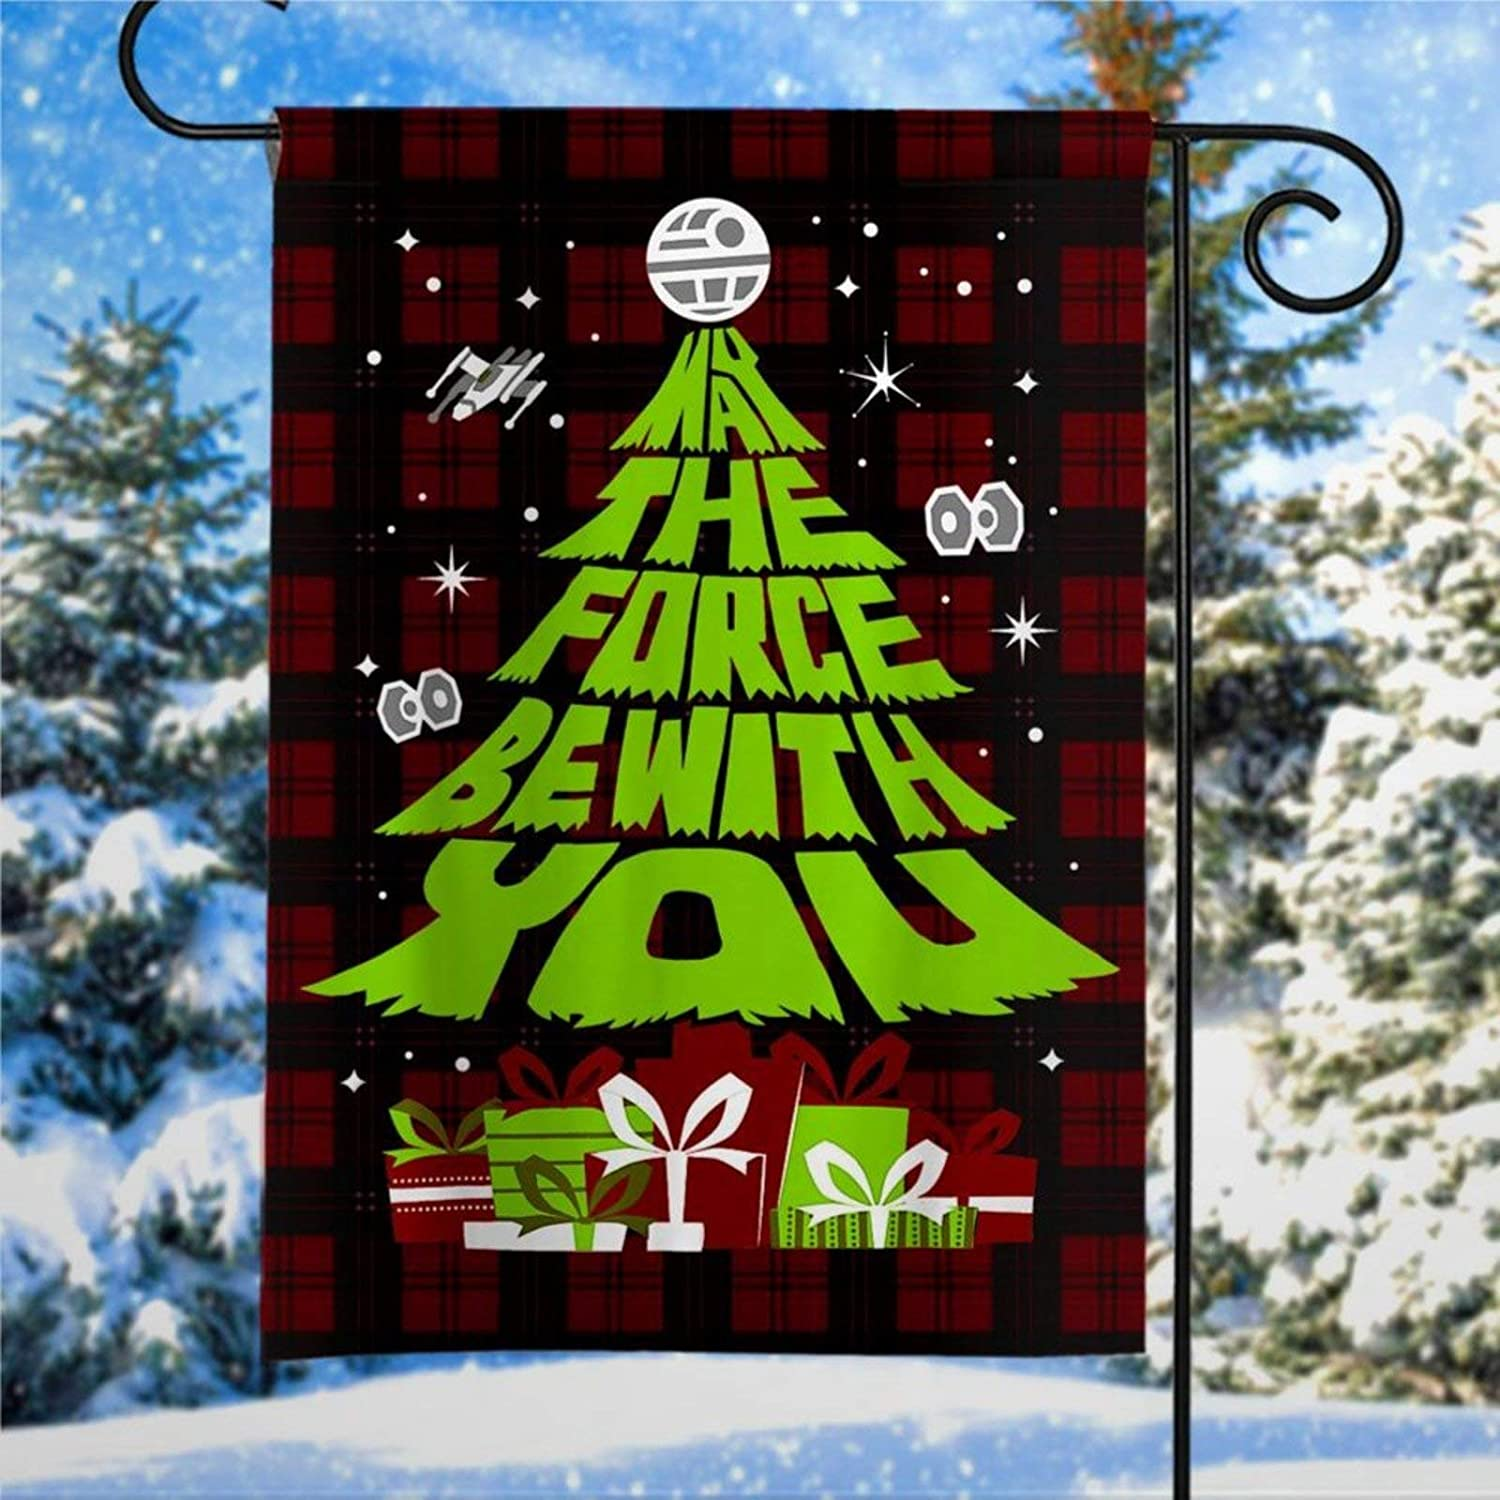 Star Wars May The Force Be With You Christmas Tree Garden Flag Outdoor Christmas Decoration Custom Christmas Flag Christmas Flag Yard Flag Farmhouse decor Yard Holiday Seasonal Outdoor Decor